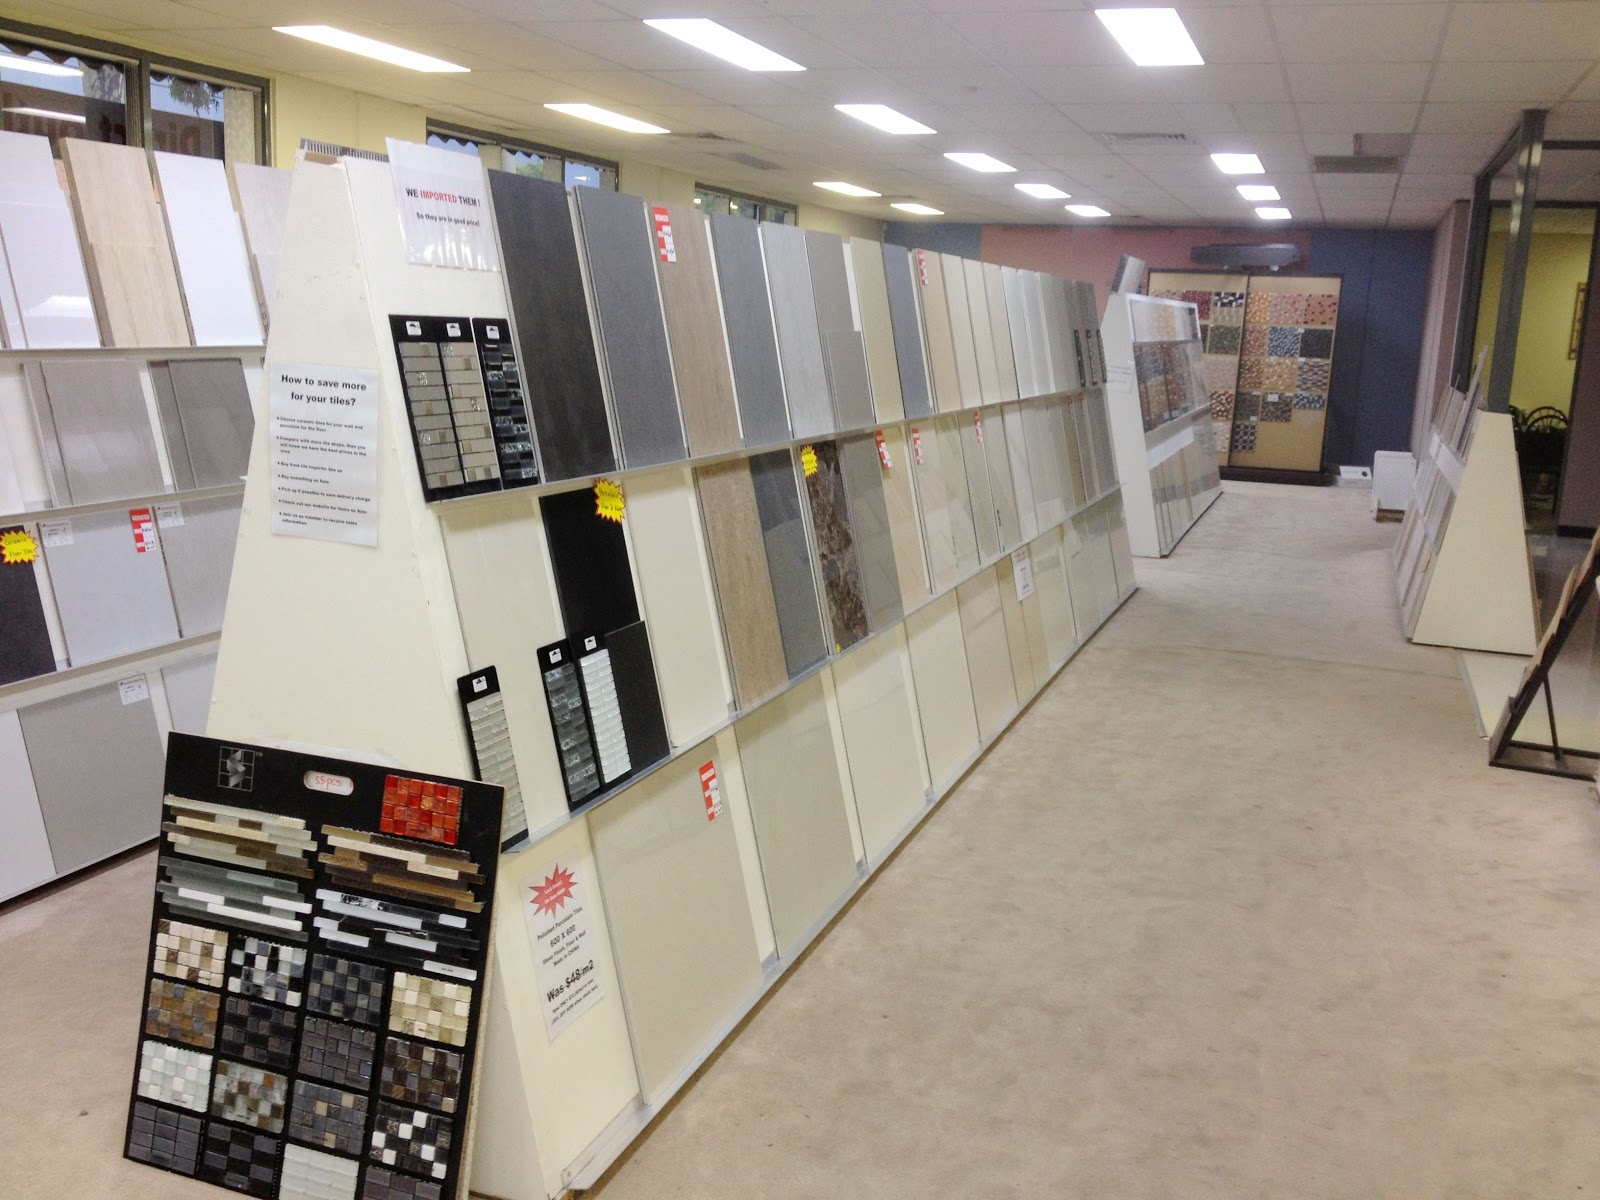 Introducing Bayswater Tile Bathroom Shop: Bayswater Tile Bathroom ...